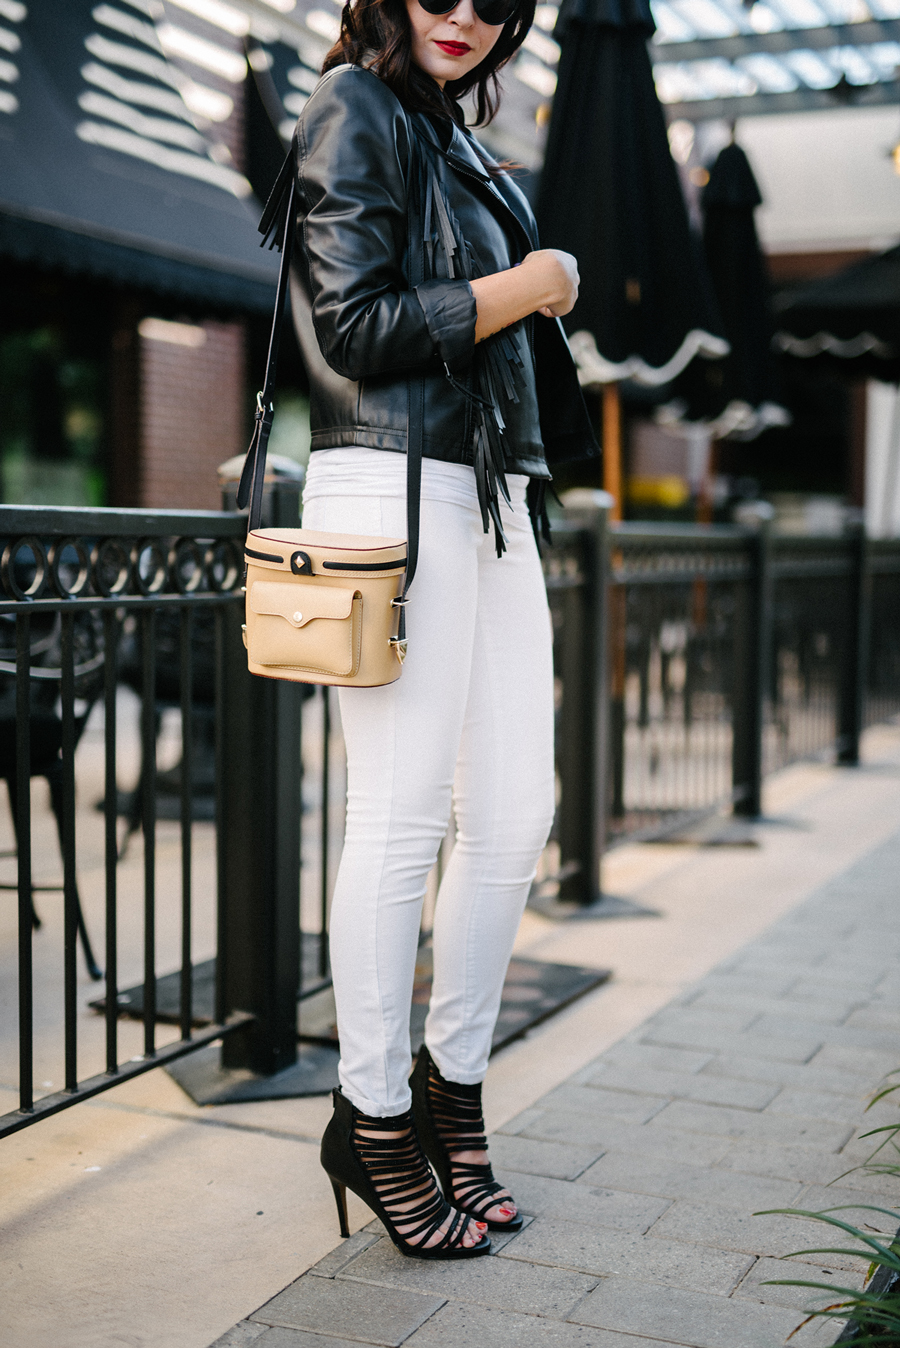 FIXIN-TO-THRILL-EXPRESS-FRINGE-LEATHER-JACKET-REBECCA-MINKOFF-TREND-CARLOS-BARRON-FALL-OCTOBER-ATX-AUSTIN-STYLE-BLOG-FW15-TRENDY-CHIC-GLAM-FASHION-TEXAS-6